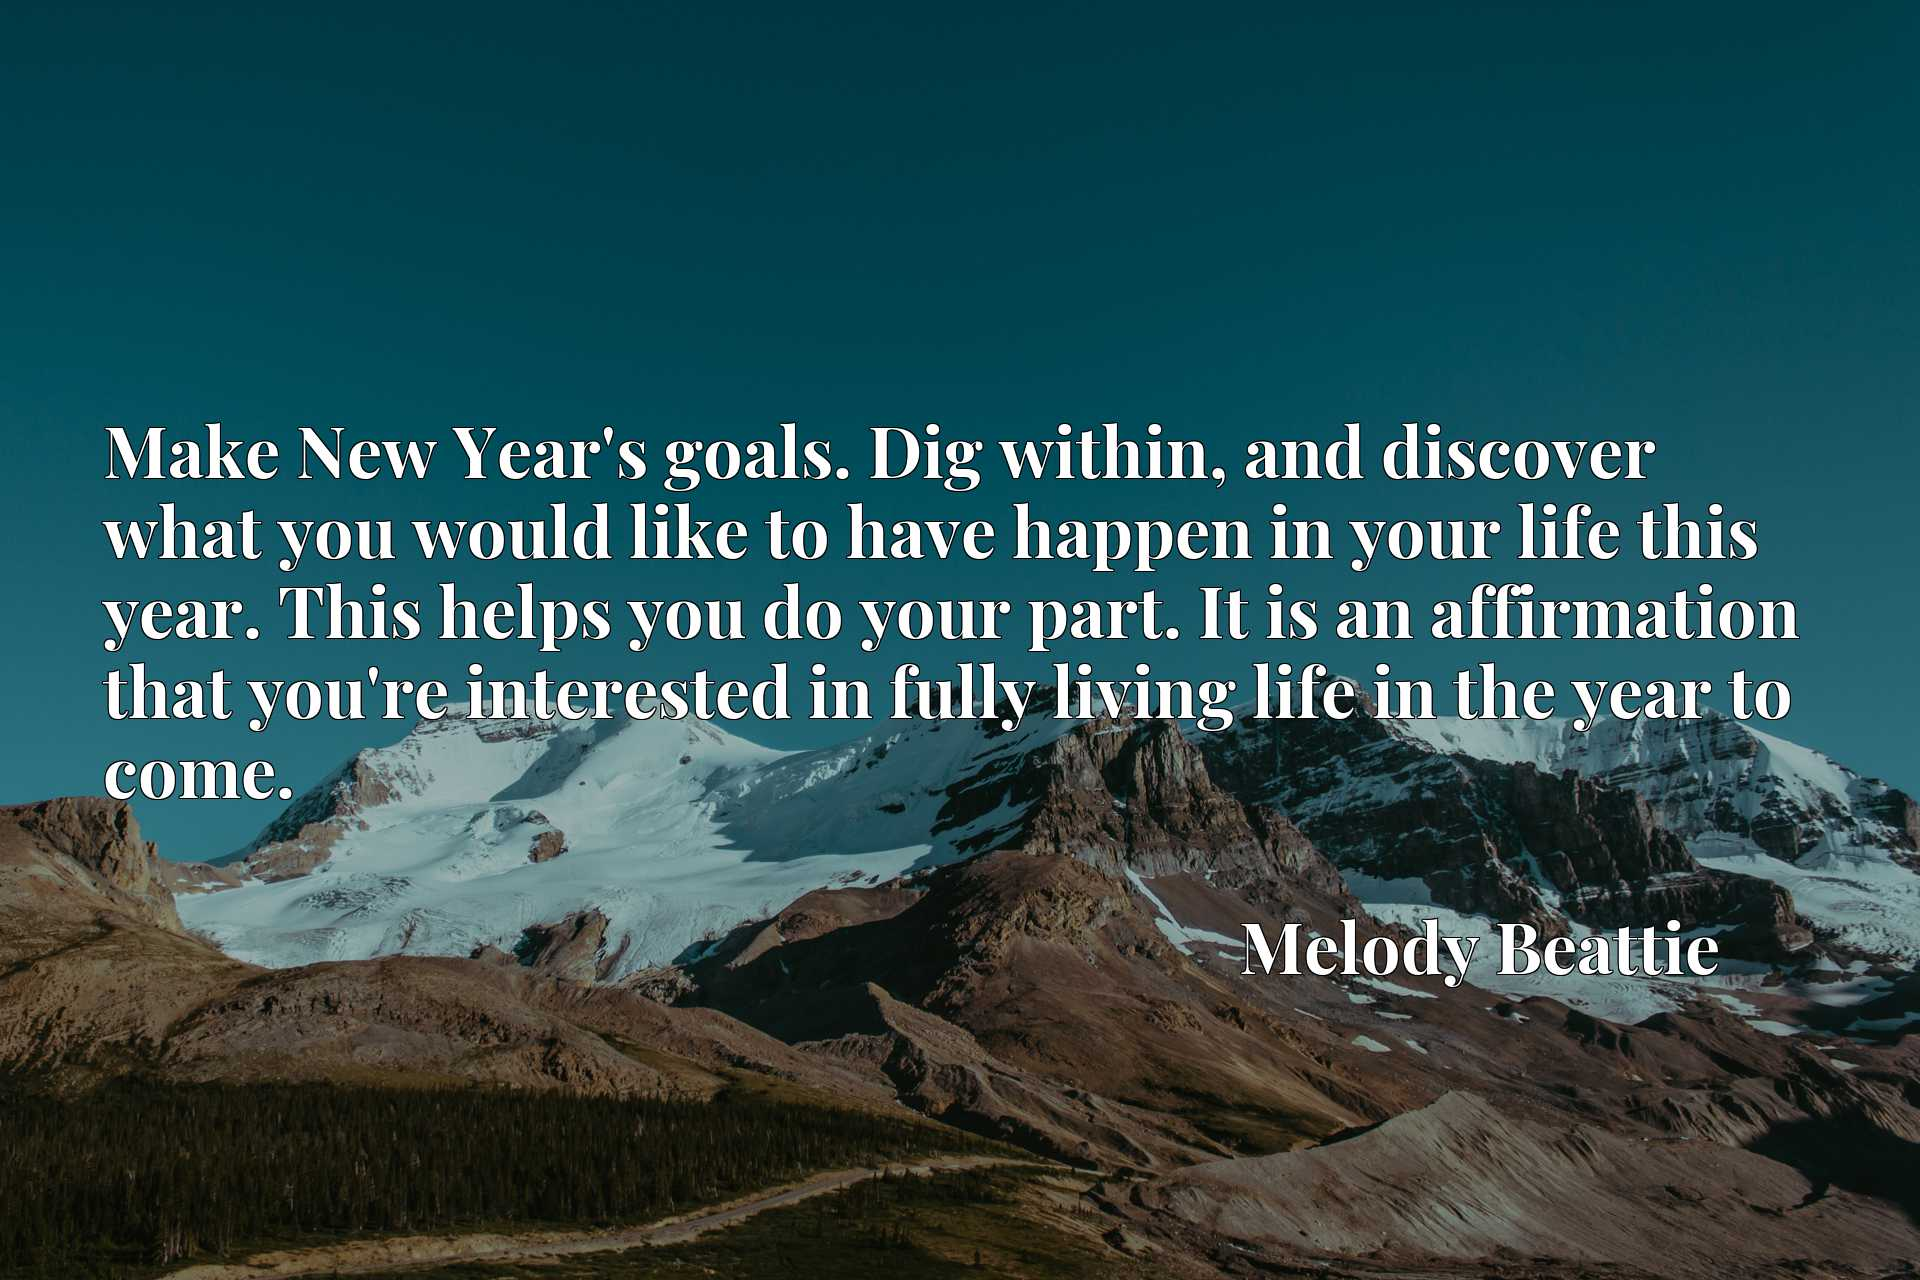 Make New Year's goals. Dig within, and discover what you would like to have happen in your life this year. This helps you do your part. It is an affirmation that you're interested in fully living life in the year to come.